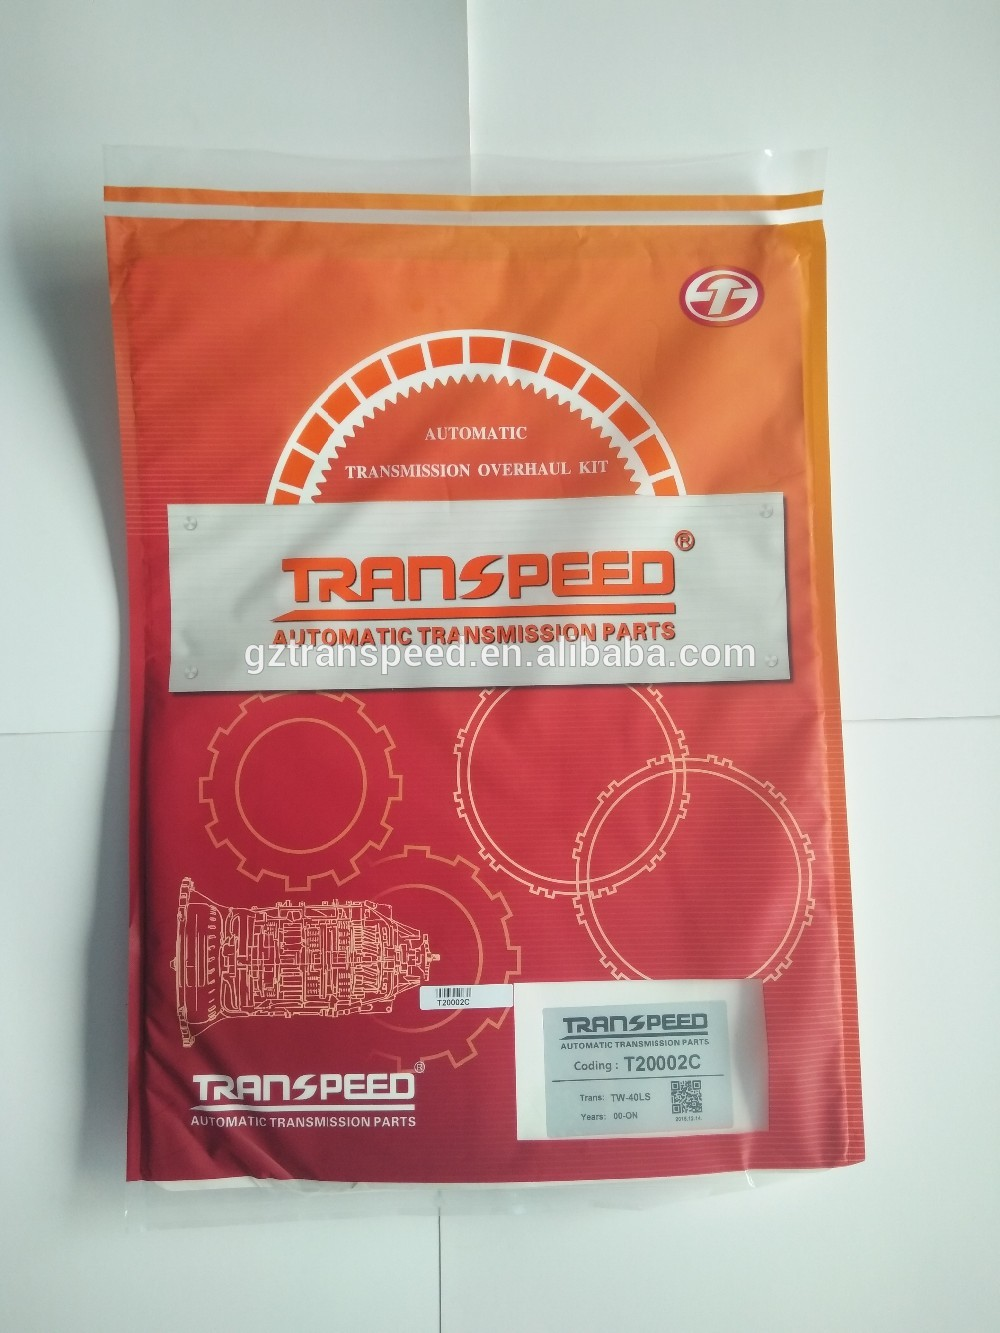 Transpeed TW-40LS overhaul kit T20002C auto seal kit repair gasket kit